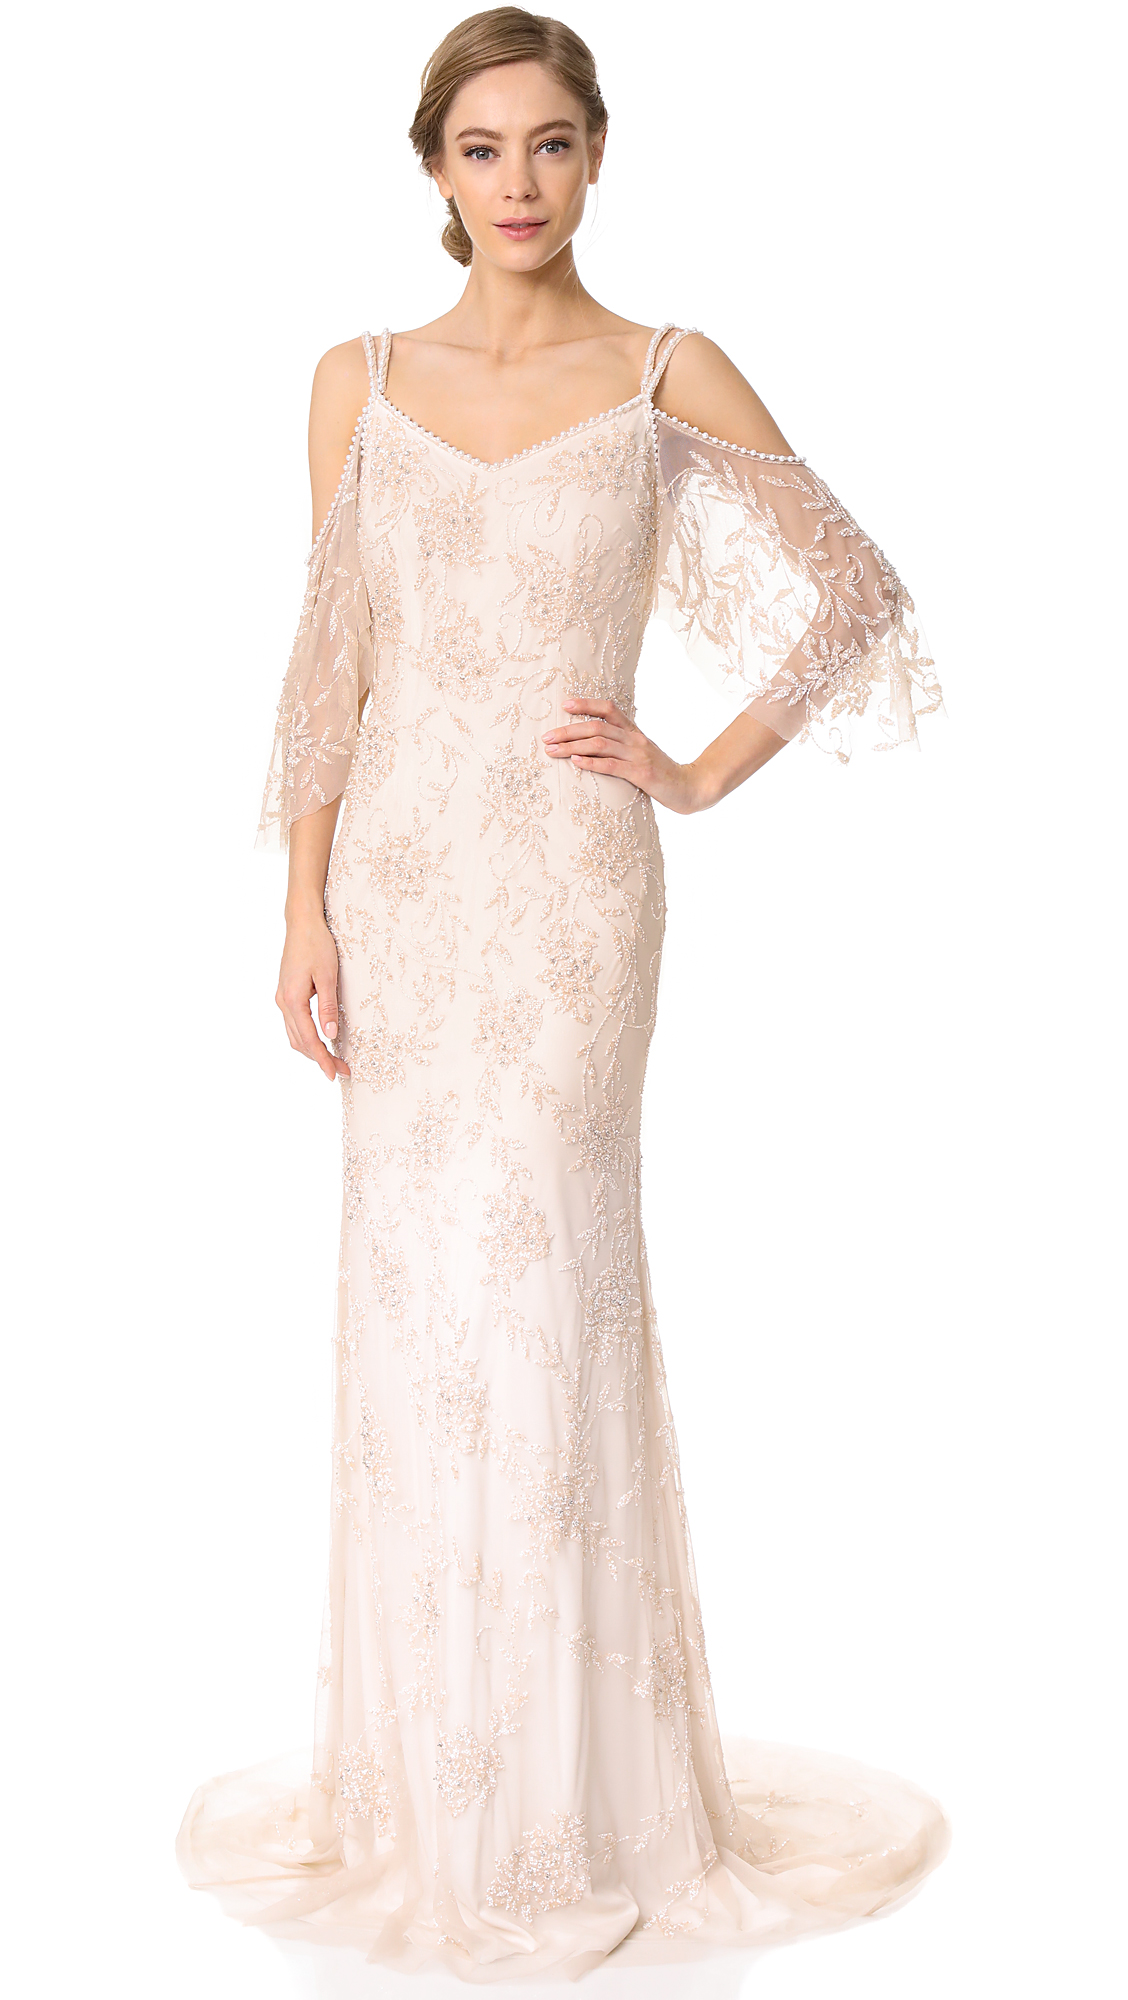 Theia Layla Off the Shoulder Slip Gown - Blush